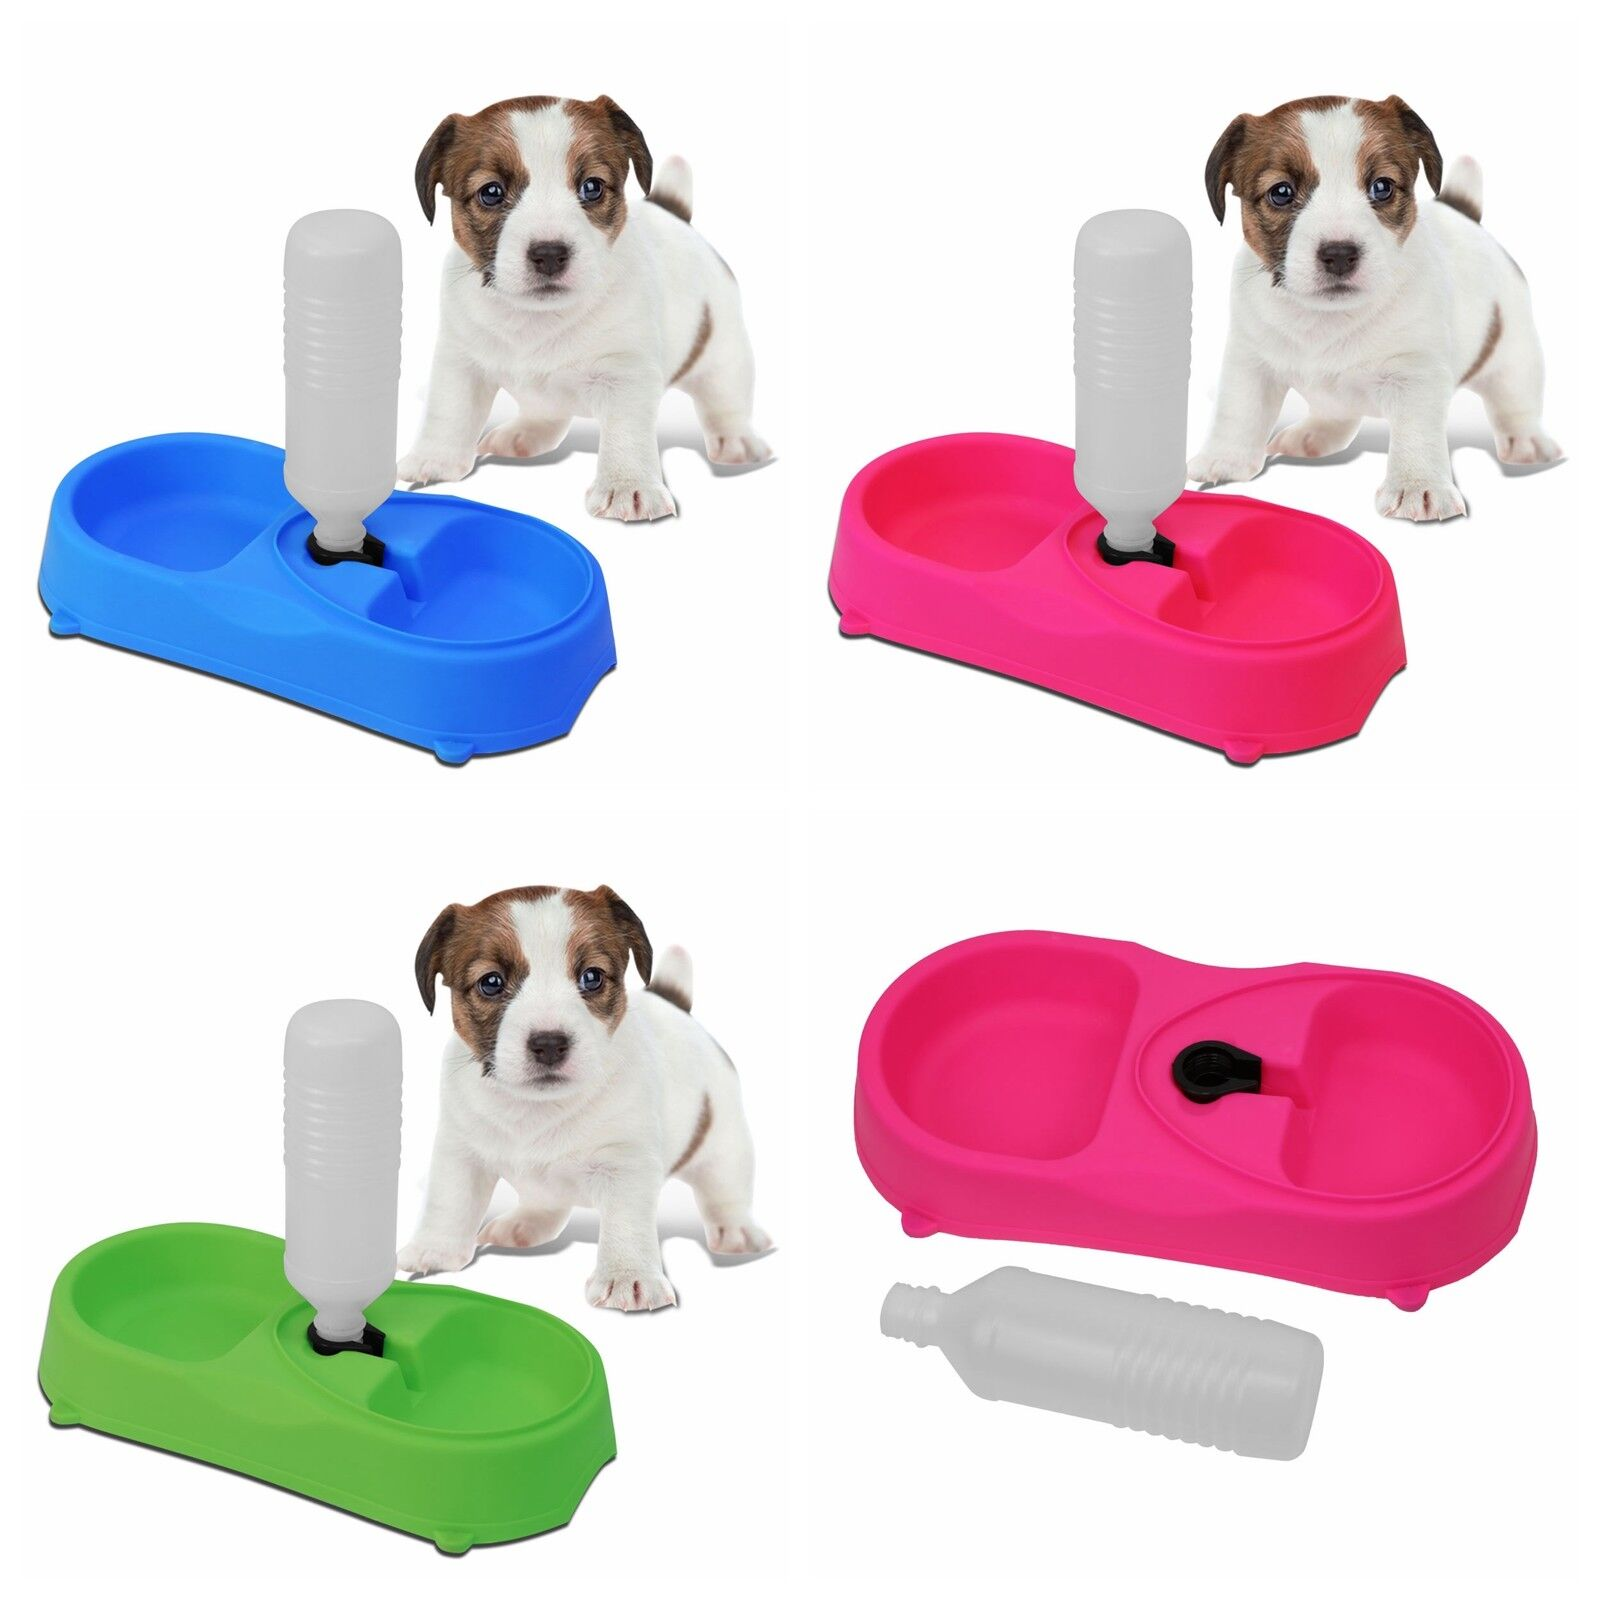 Pets Bowls Food Water Bowl Feeder Dispenser with Water Bottle Non-Slip Base